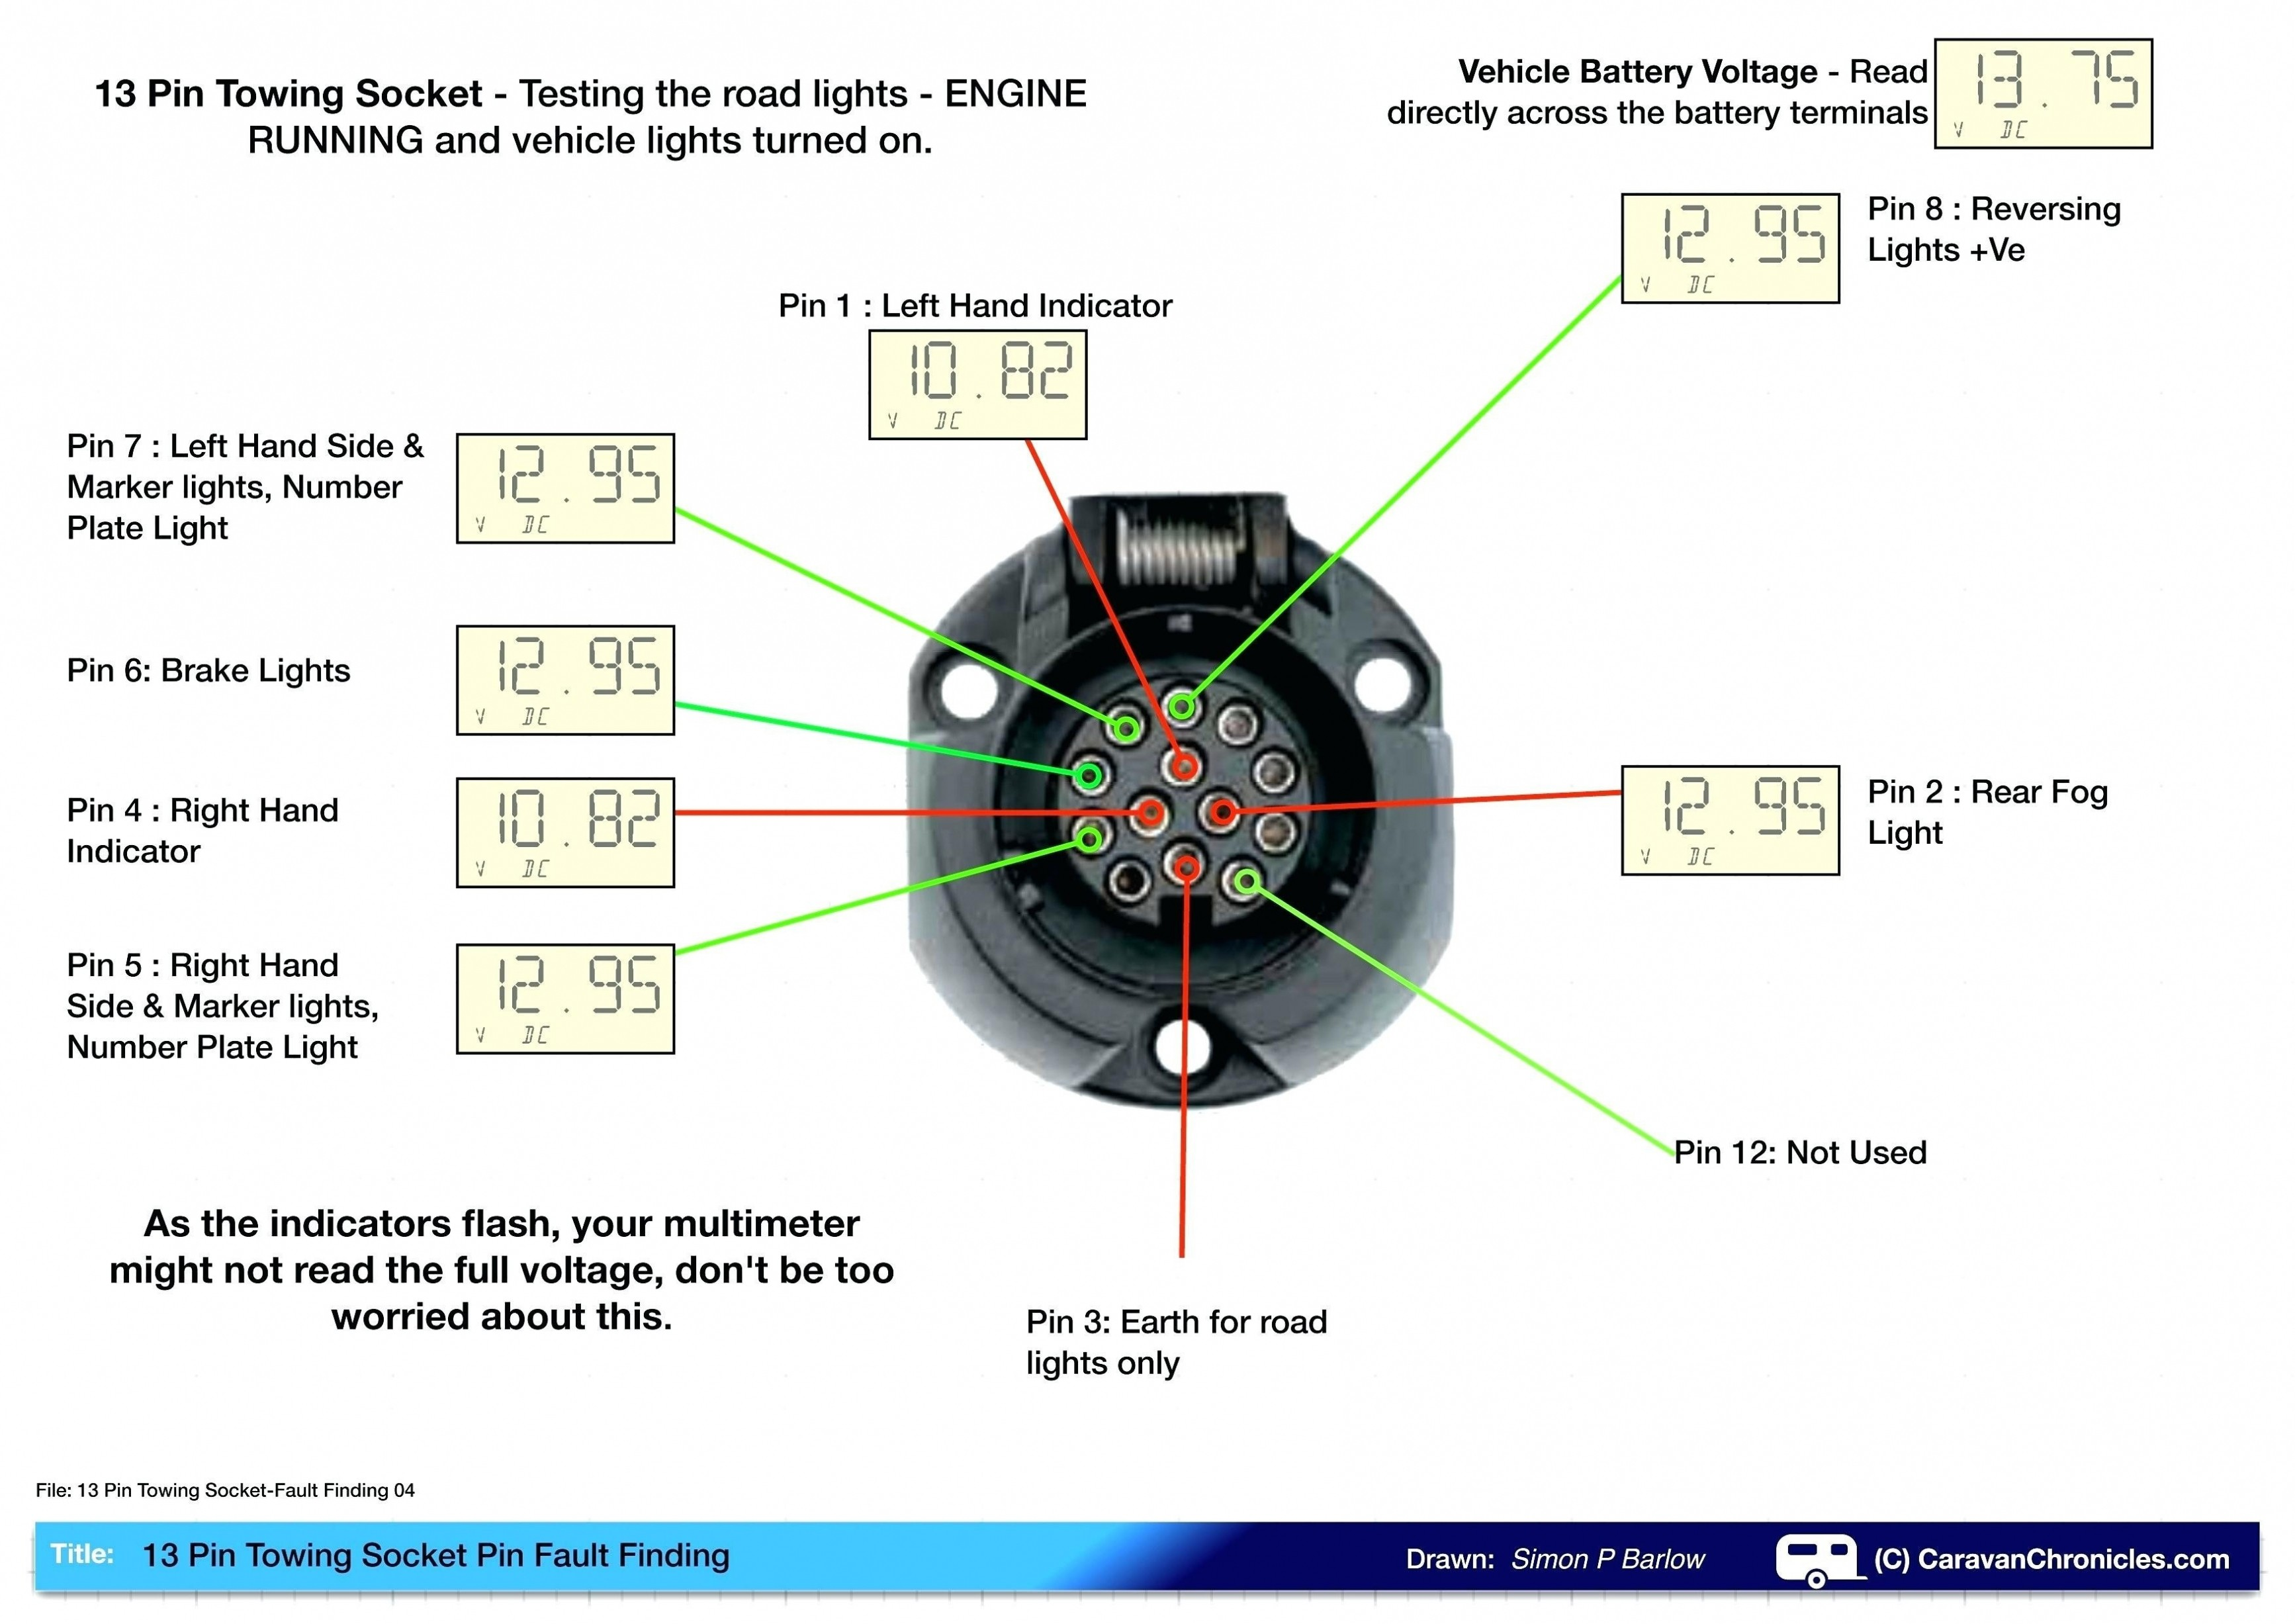 Wiring Diagram for Turn Signals 7 Wire Turn Signal Diagram Trusted Schematics Diagram Of Wiring Diagram for Turn Signals